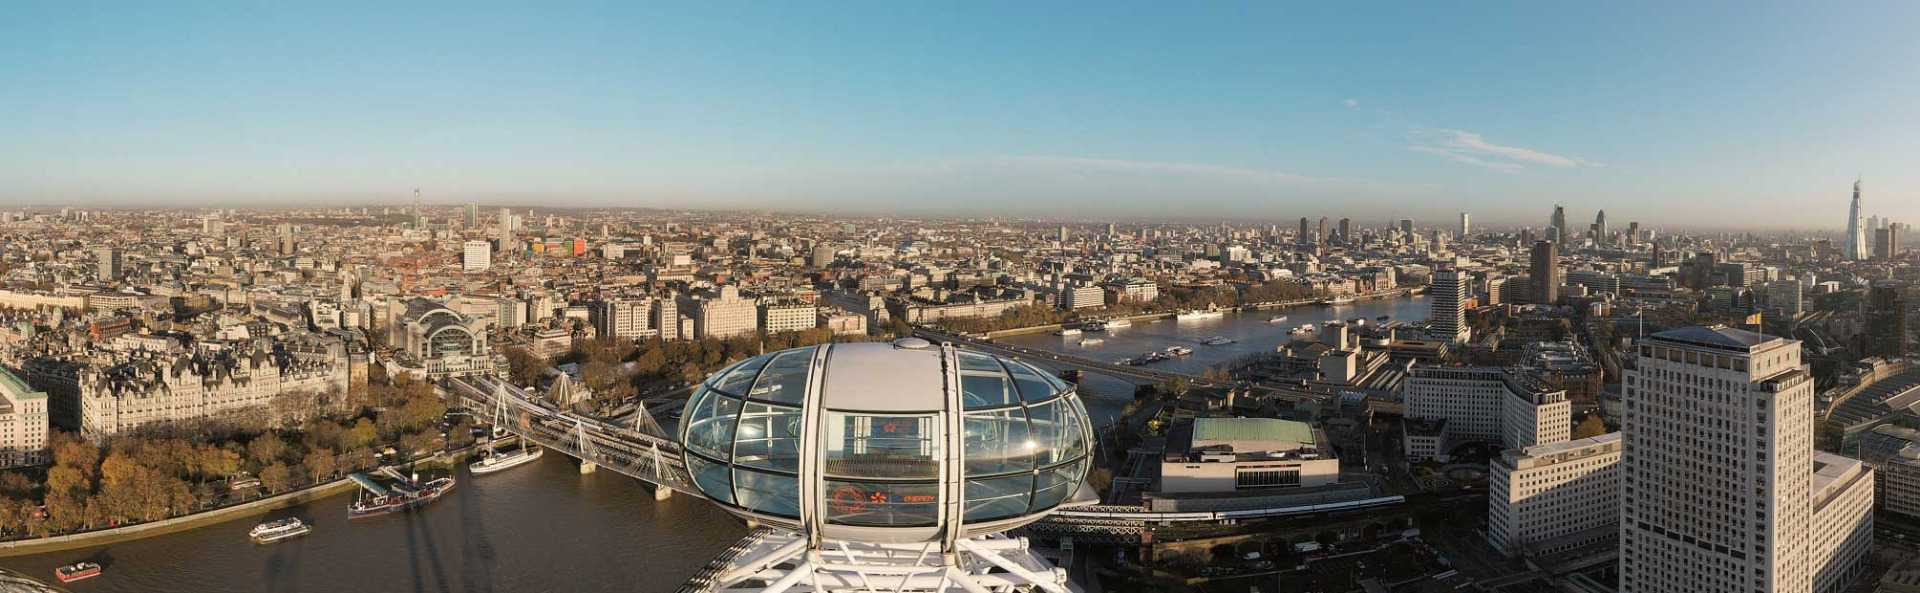 London Eye View Daytime